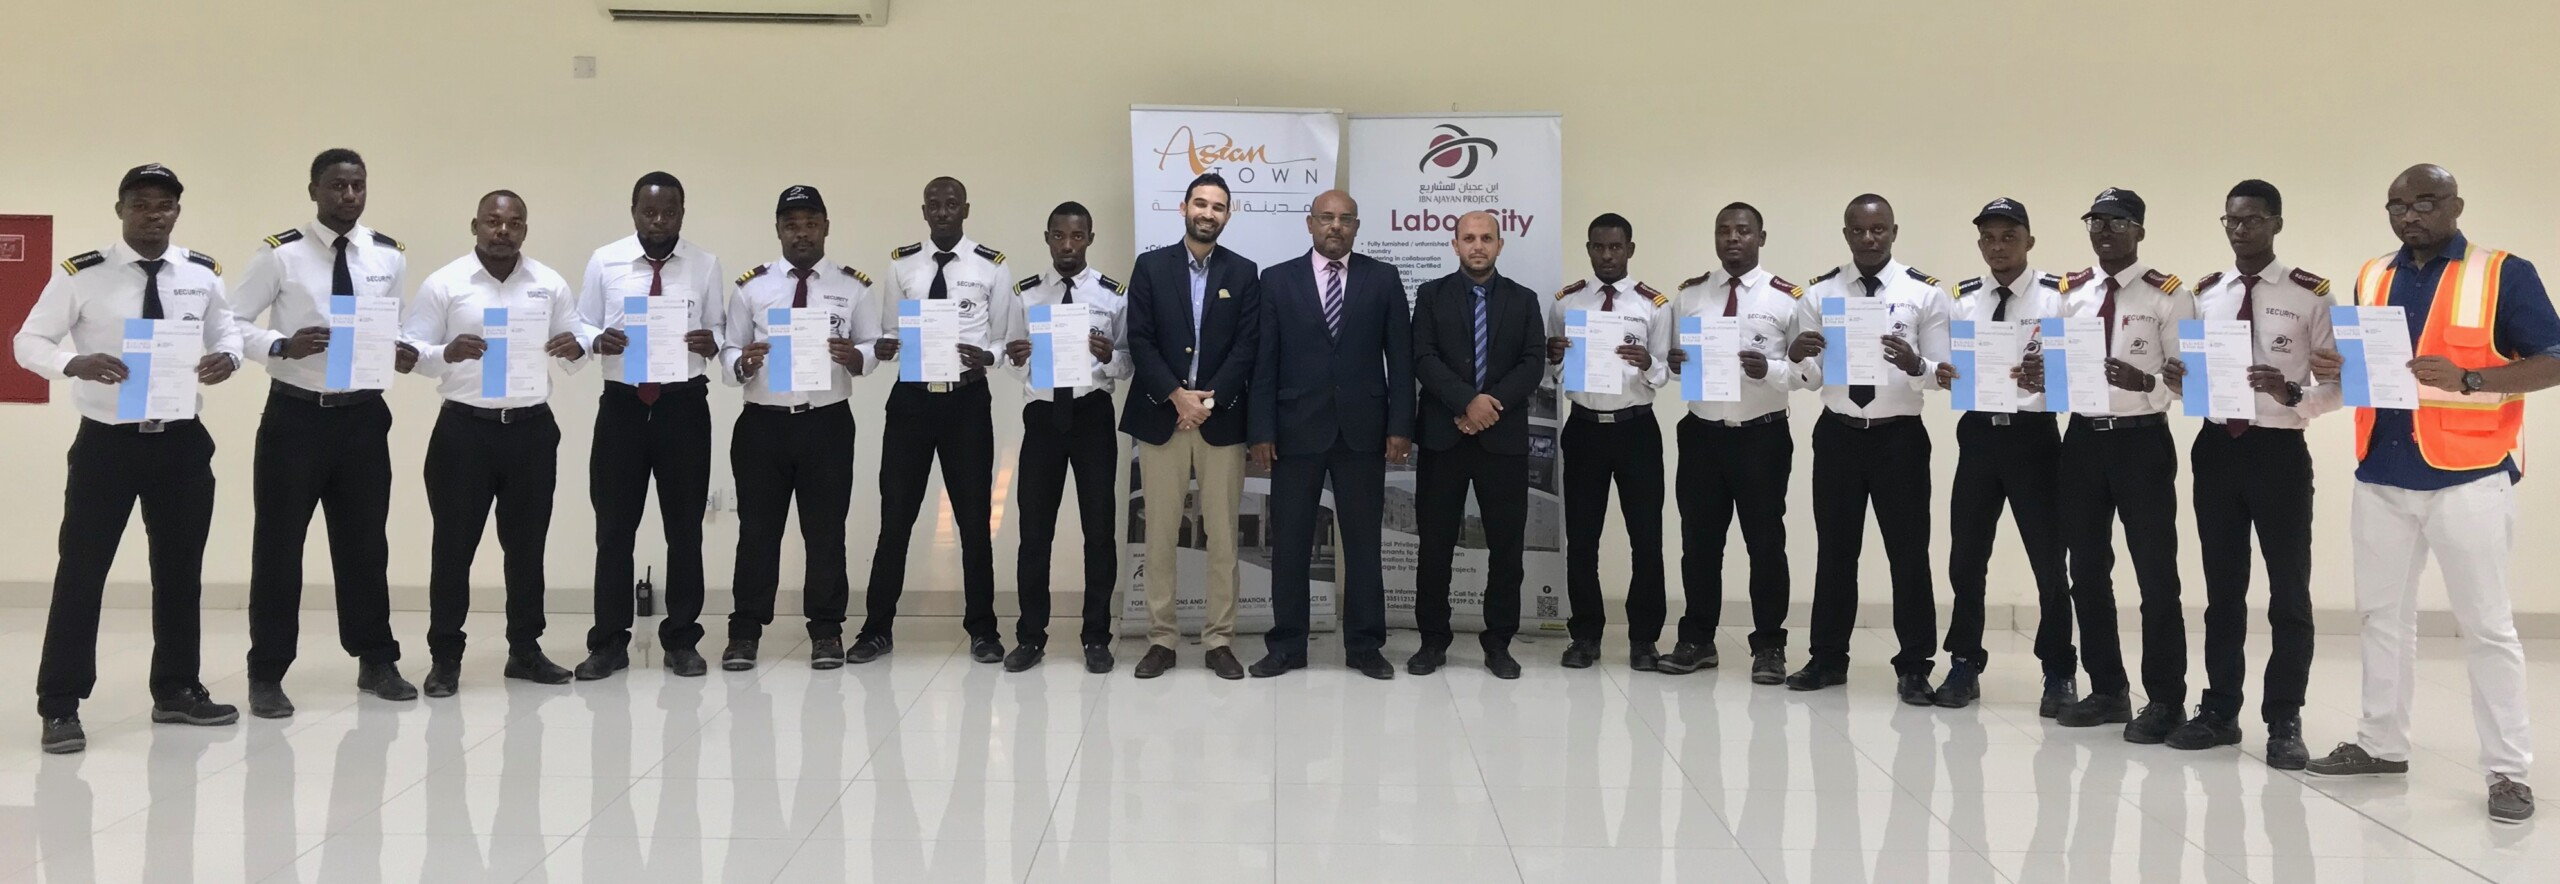 IAP Securities completes BLS/AED & First Aid Course